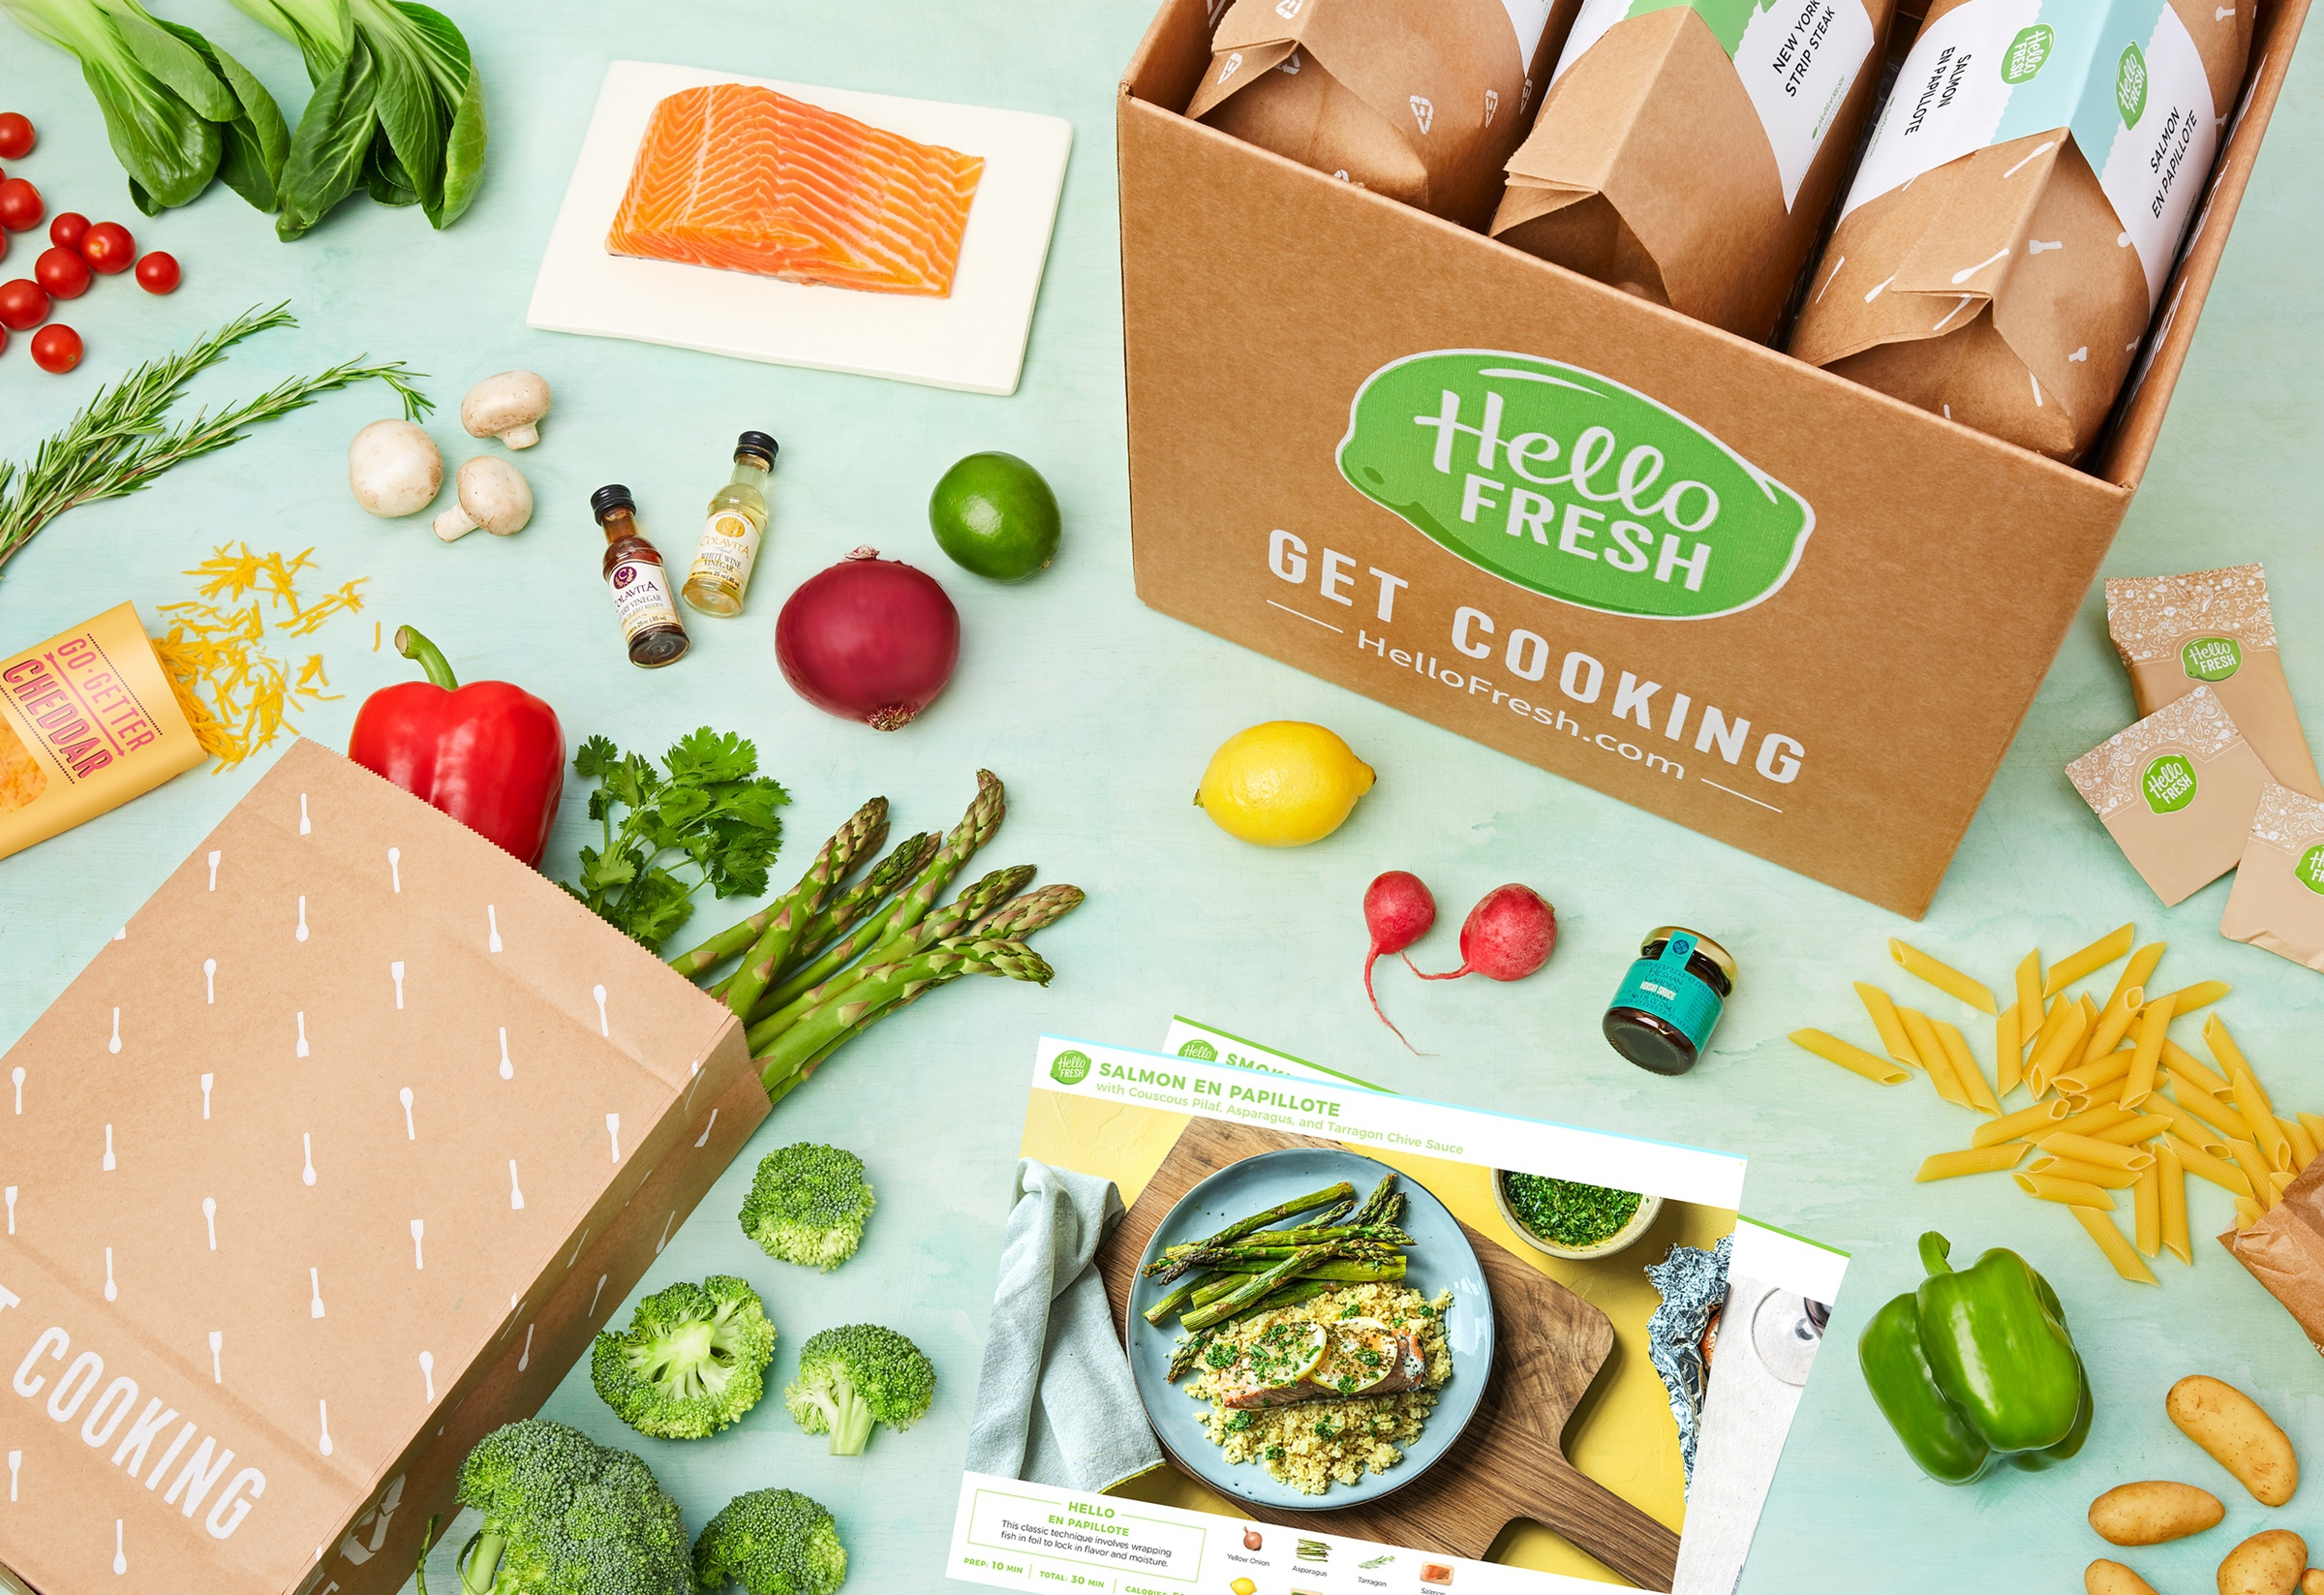 a hello fresh box on a table alongside a bag of vegetables, fish and a recipe card